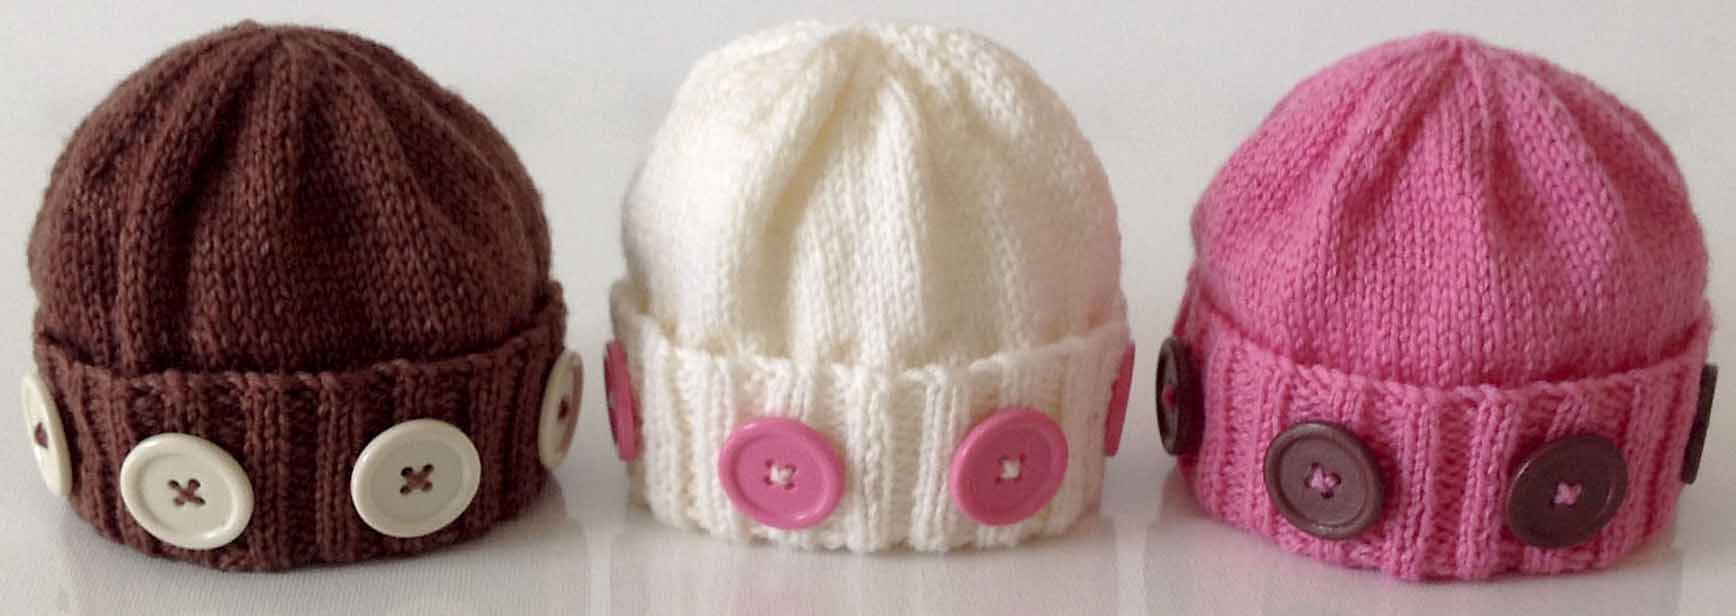 Free Knitting Patterns For Baby Hats Magnificent Decorating Design